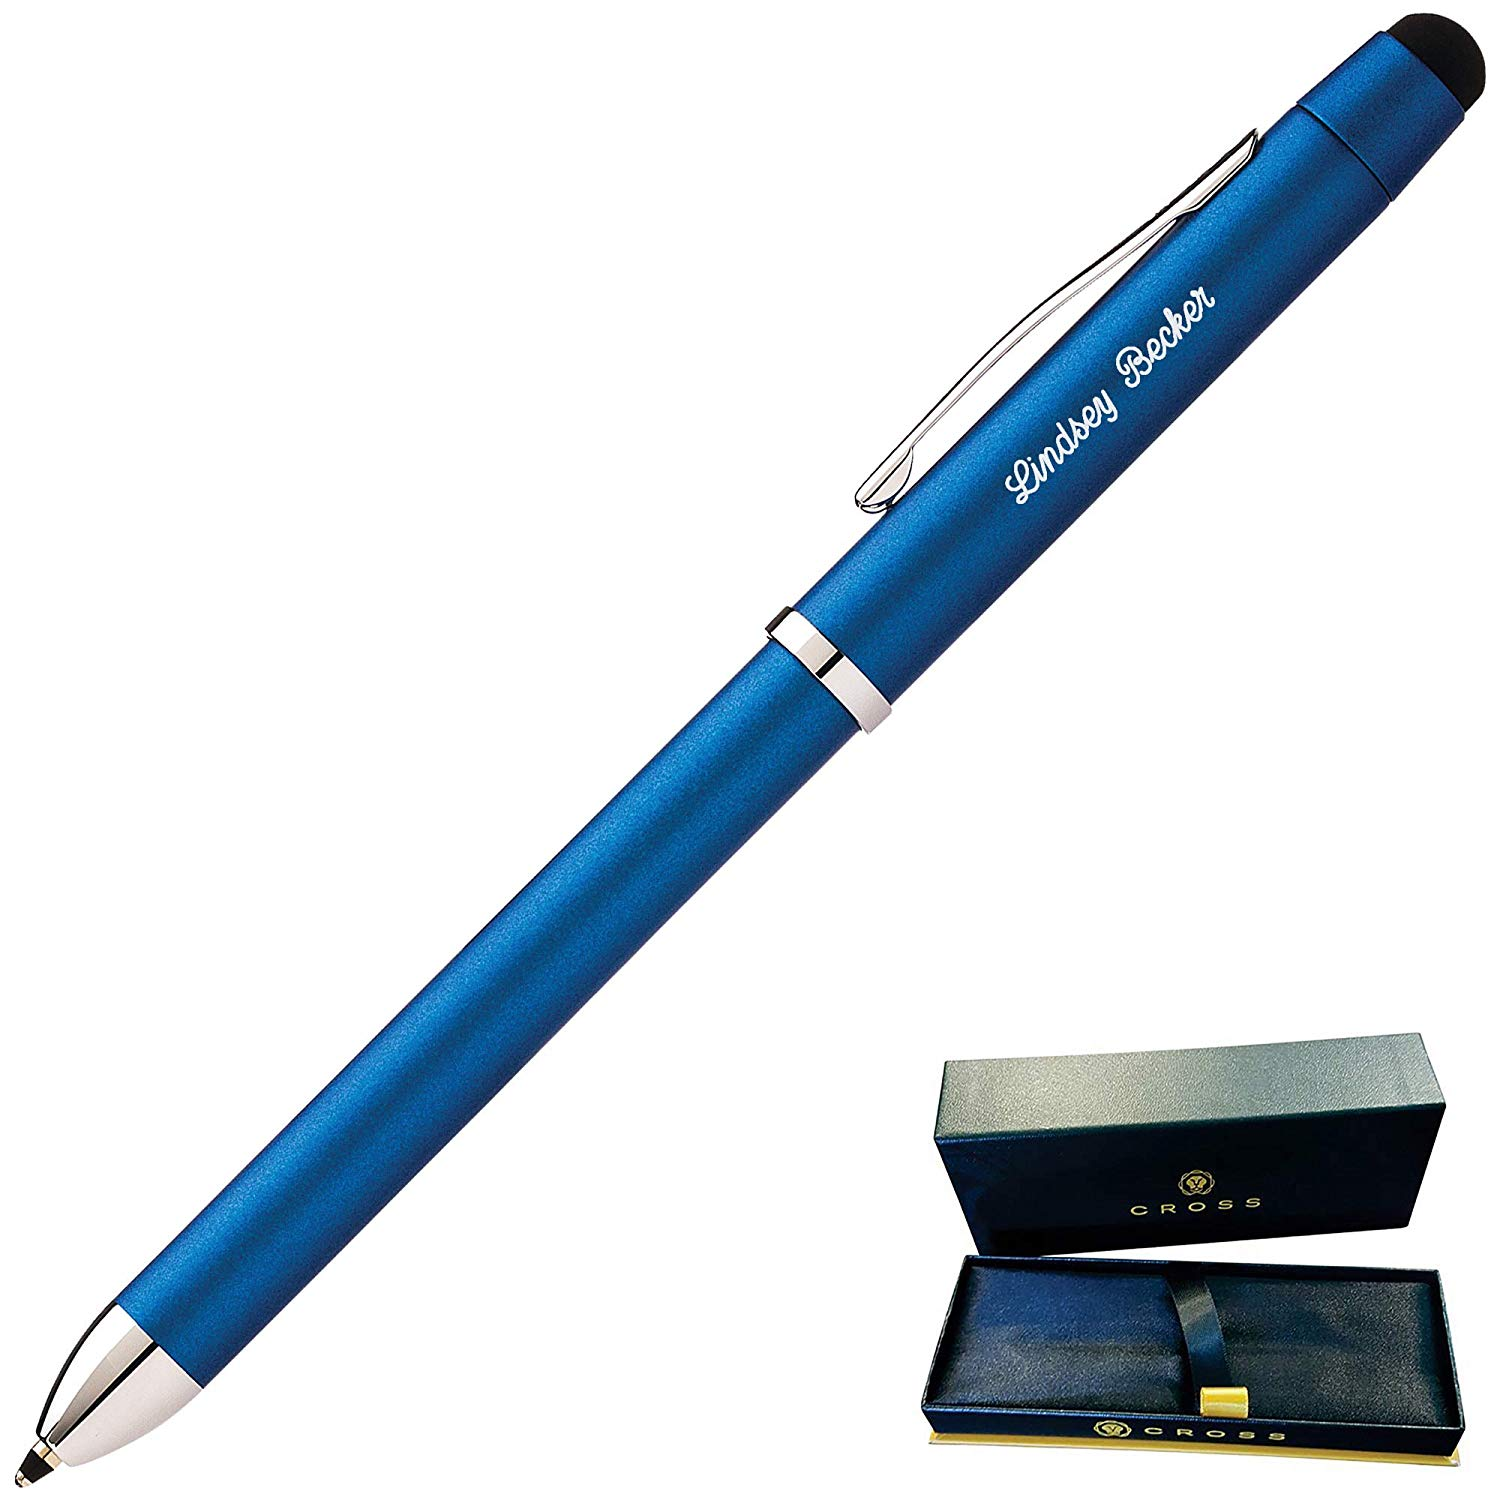 Dayspring Pens - Engraved/Personalized Cross Tech3+ Metallic Blue Multifunction Pen AT0090-8. Custom Engraving Included!